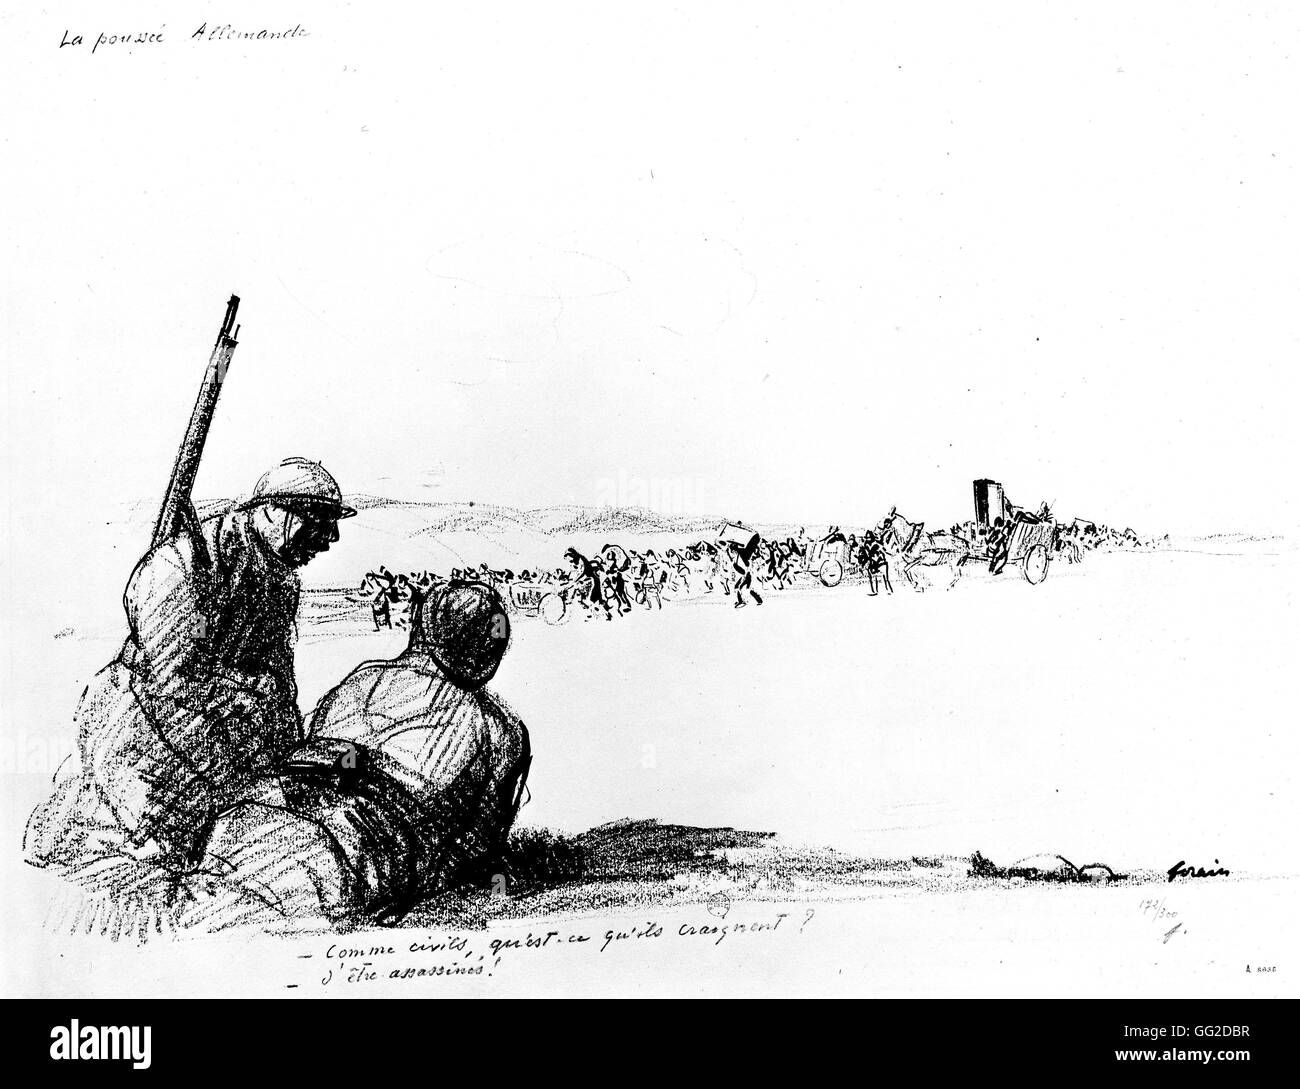 Caricature by Jean-Louis Forain (1852-1931). 'The German Push' 18-06-1918 France - World War 1 Paris. National - Stock Image